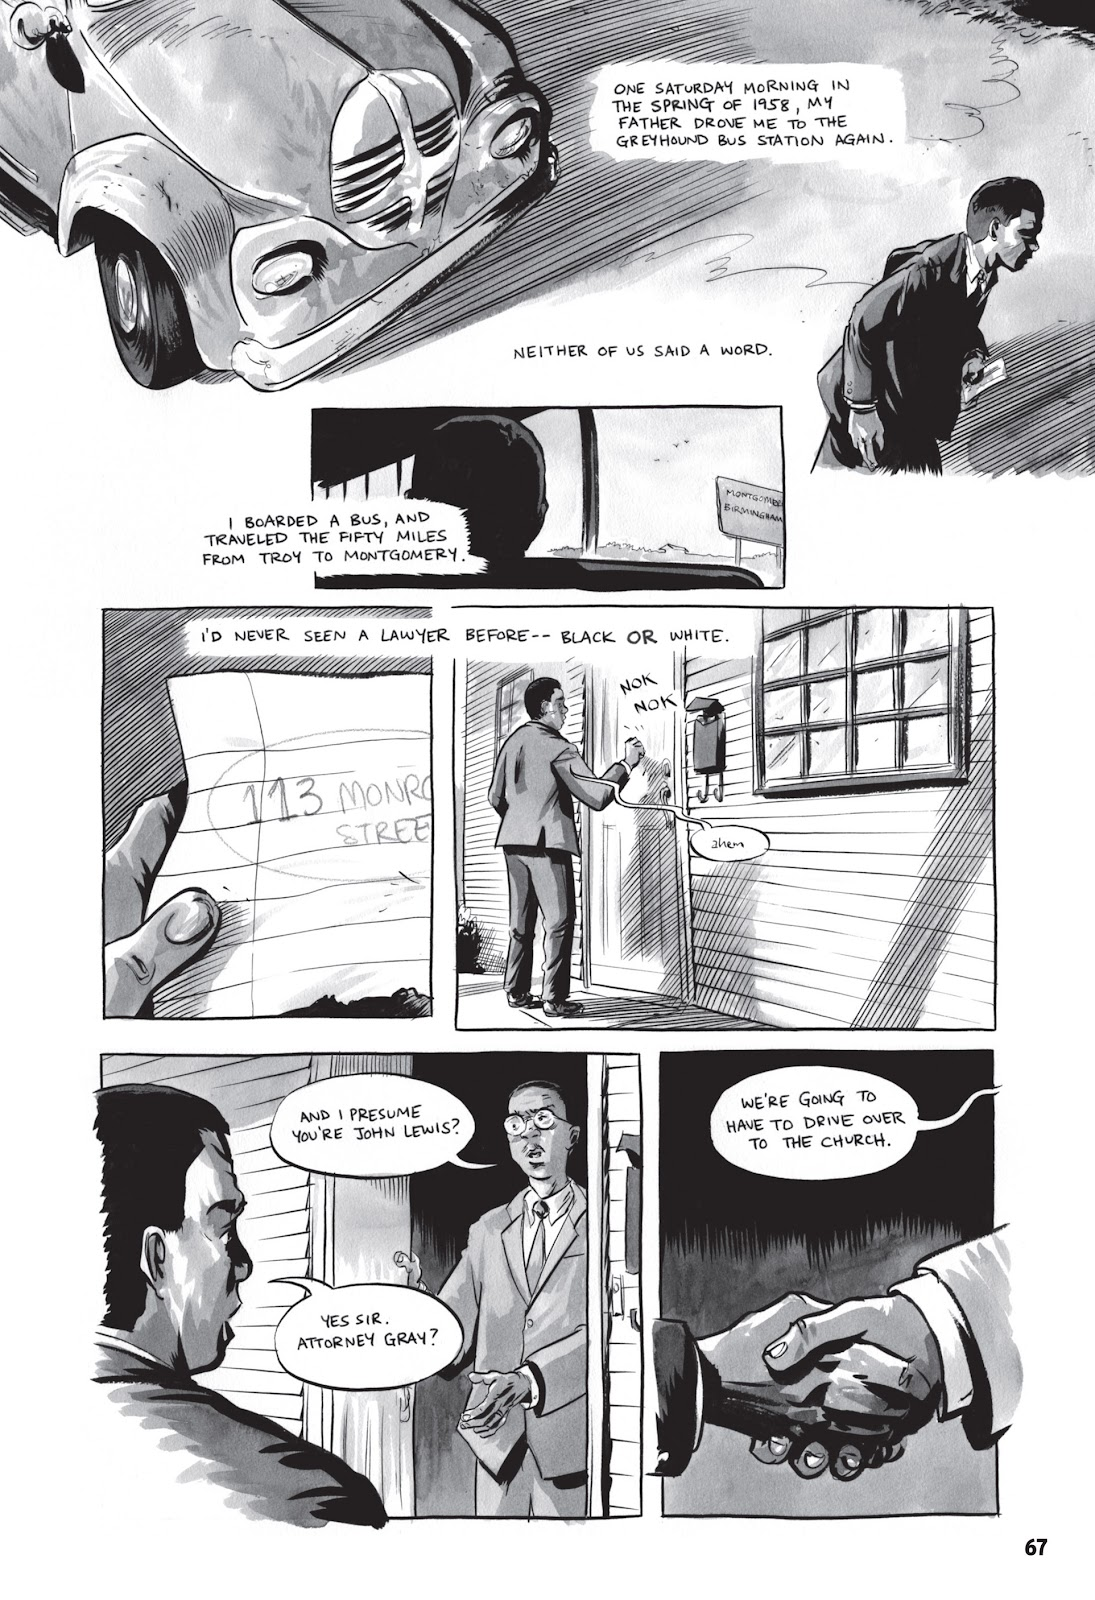 March 1 Page 64